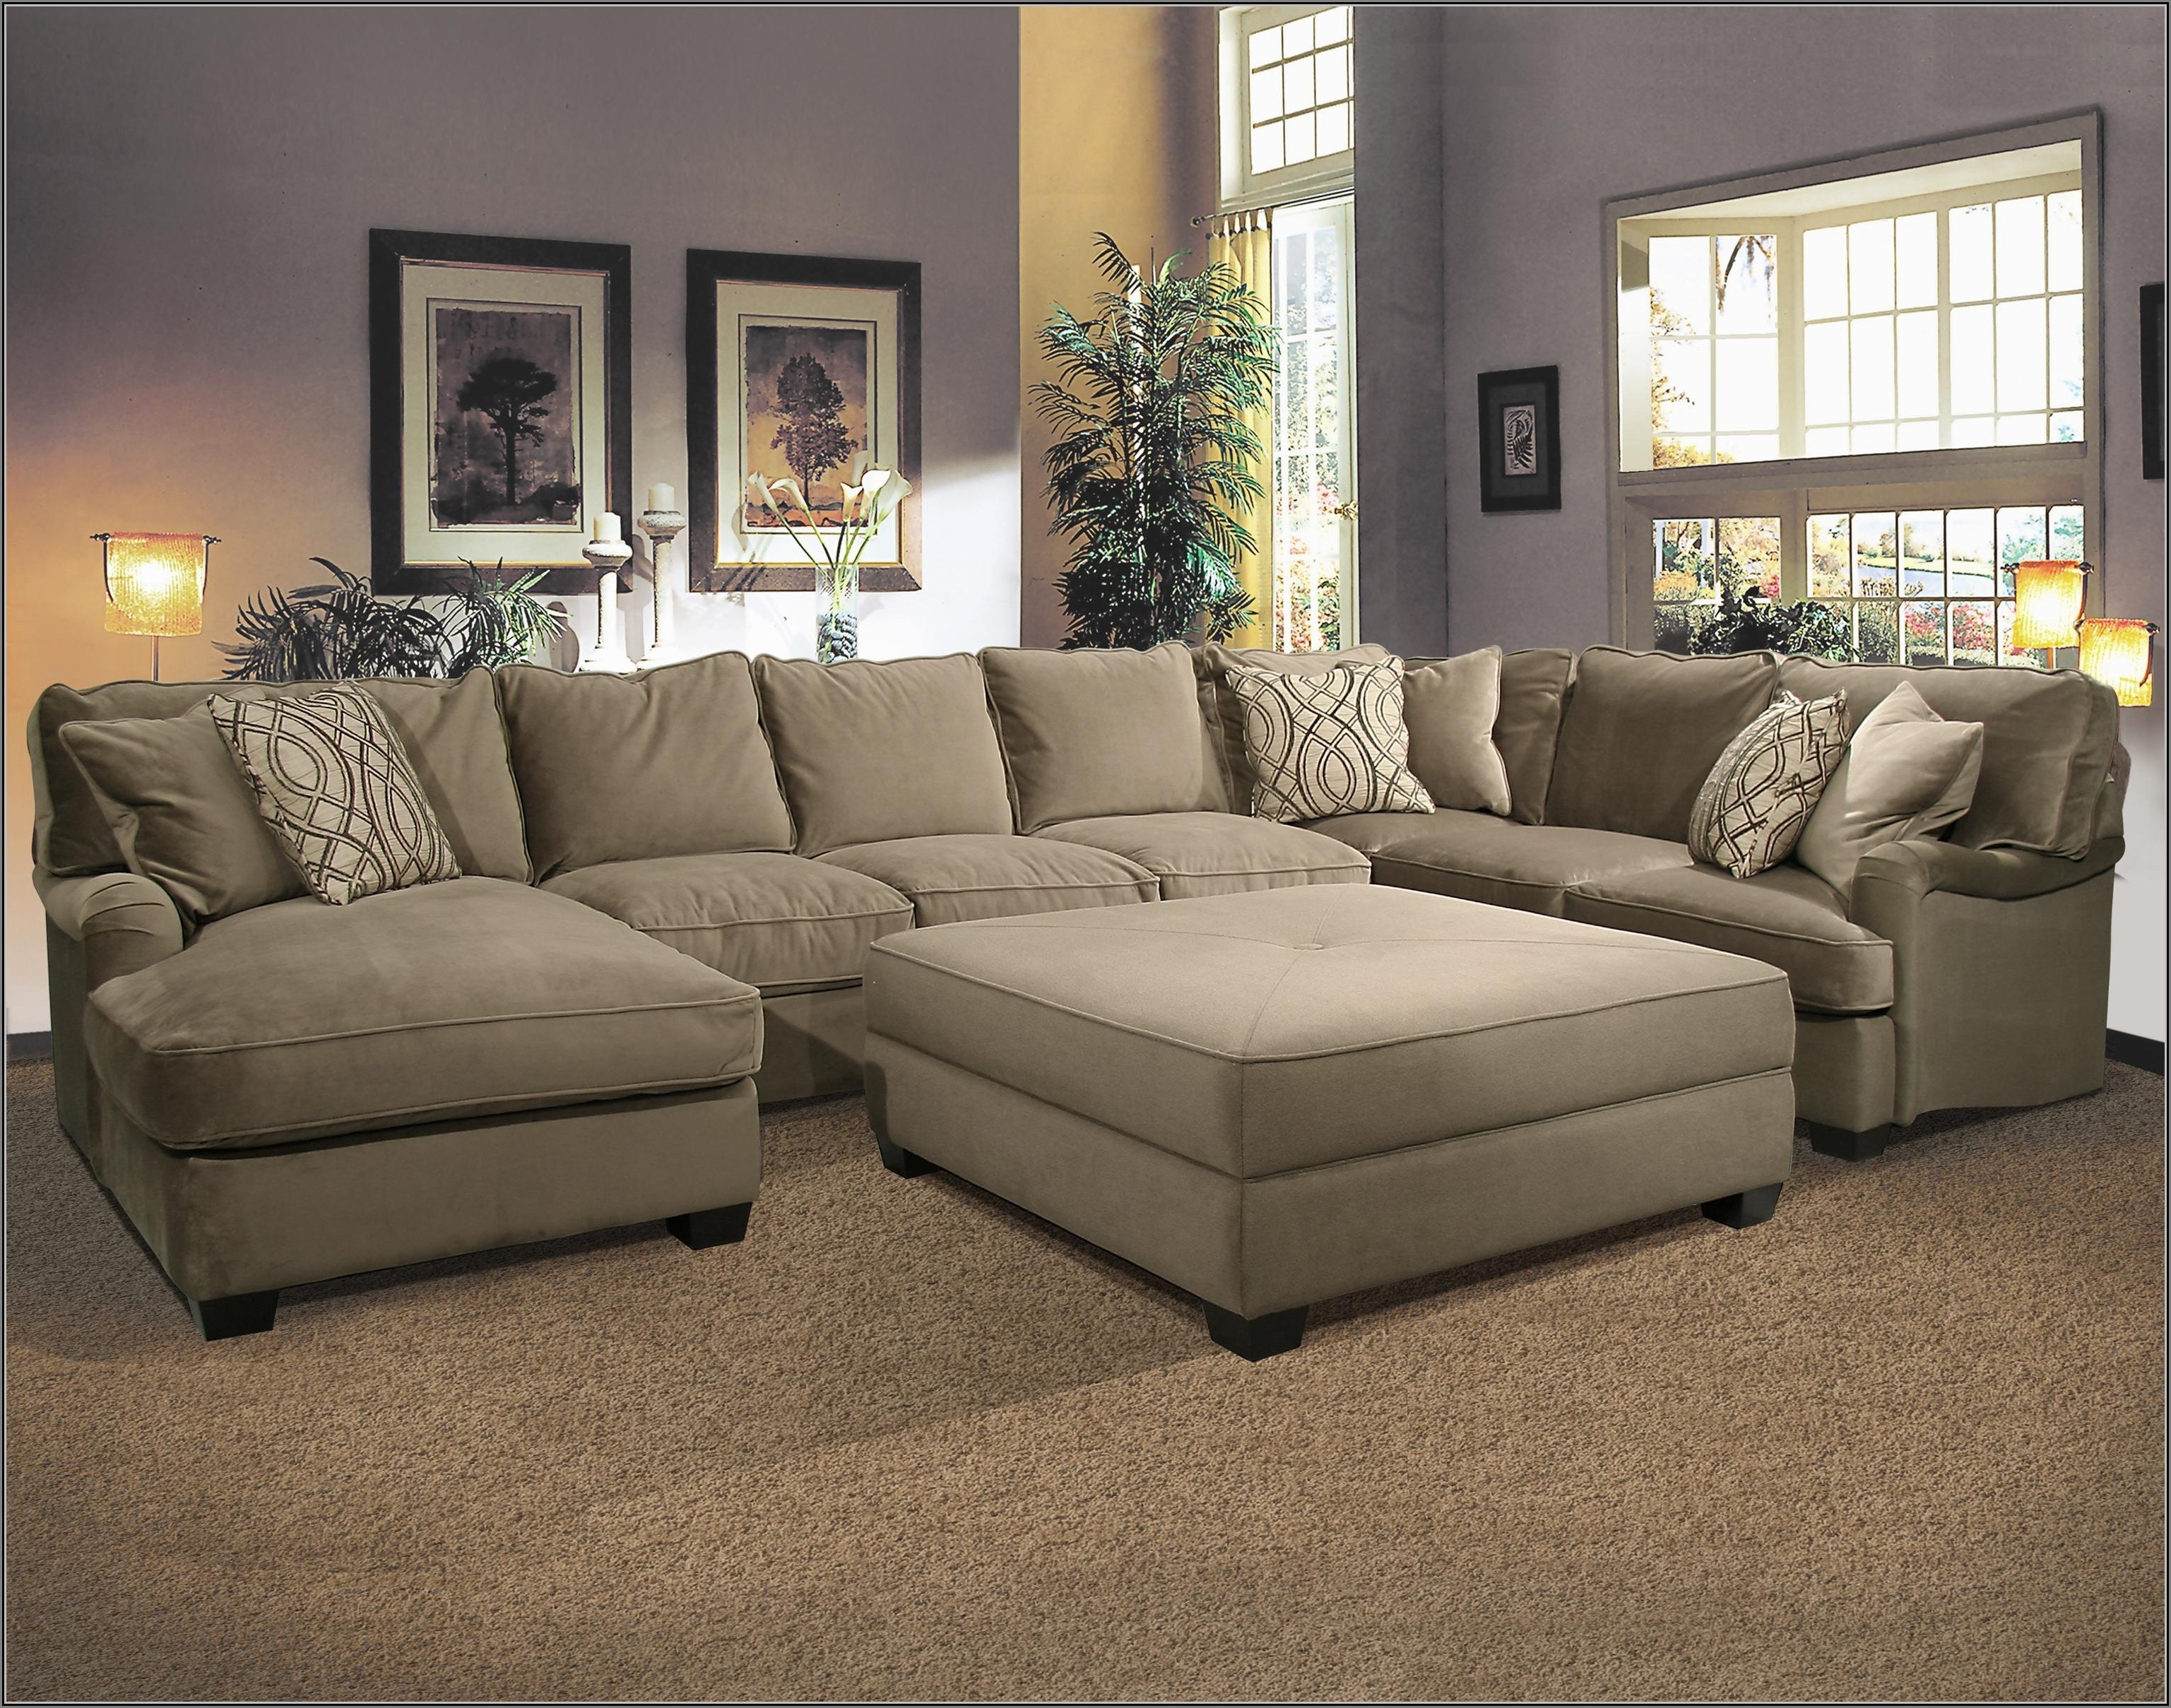 20 Ideas Of Sofas With Large Ottoman